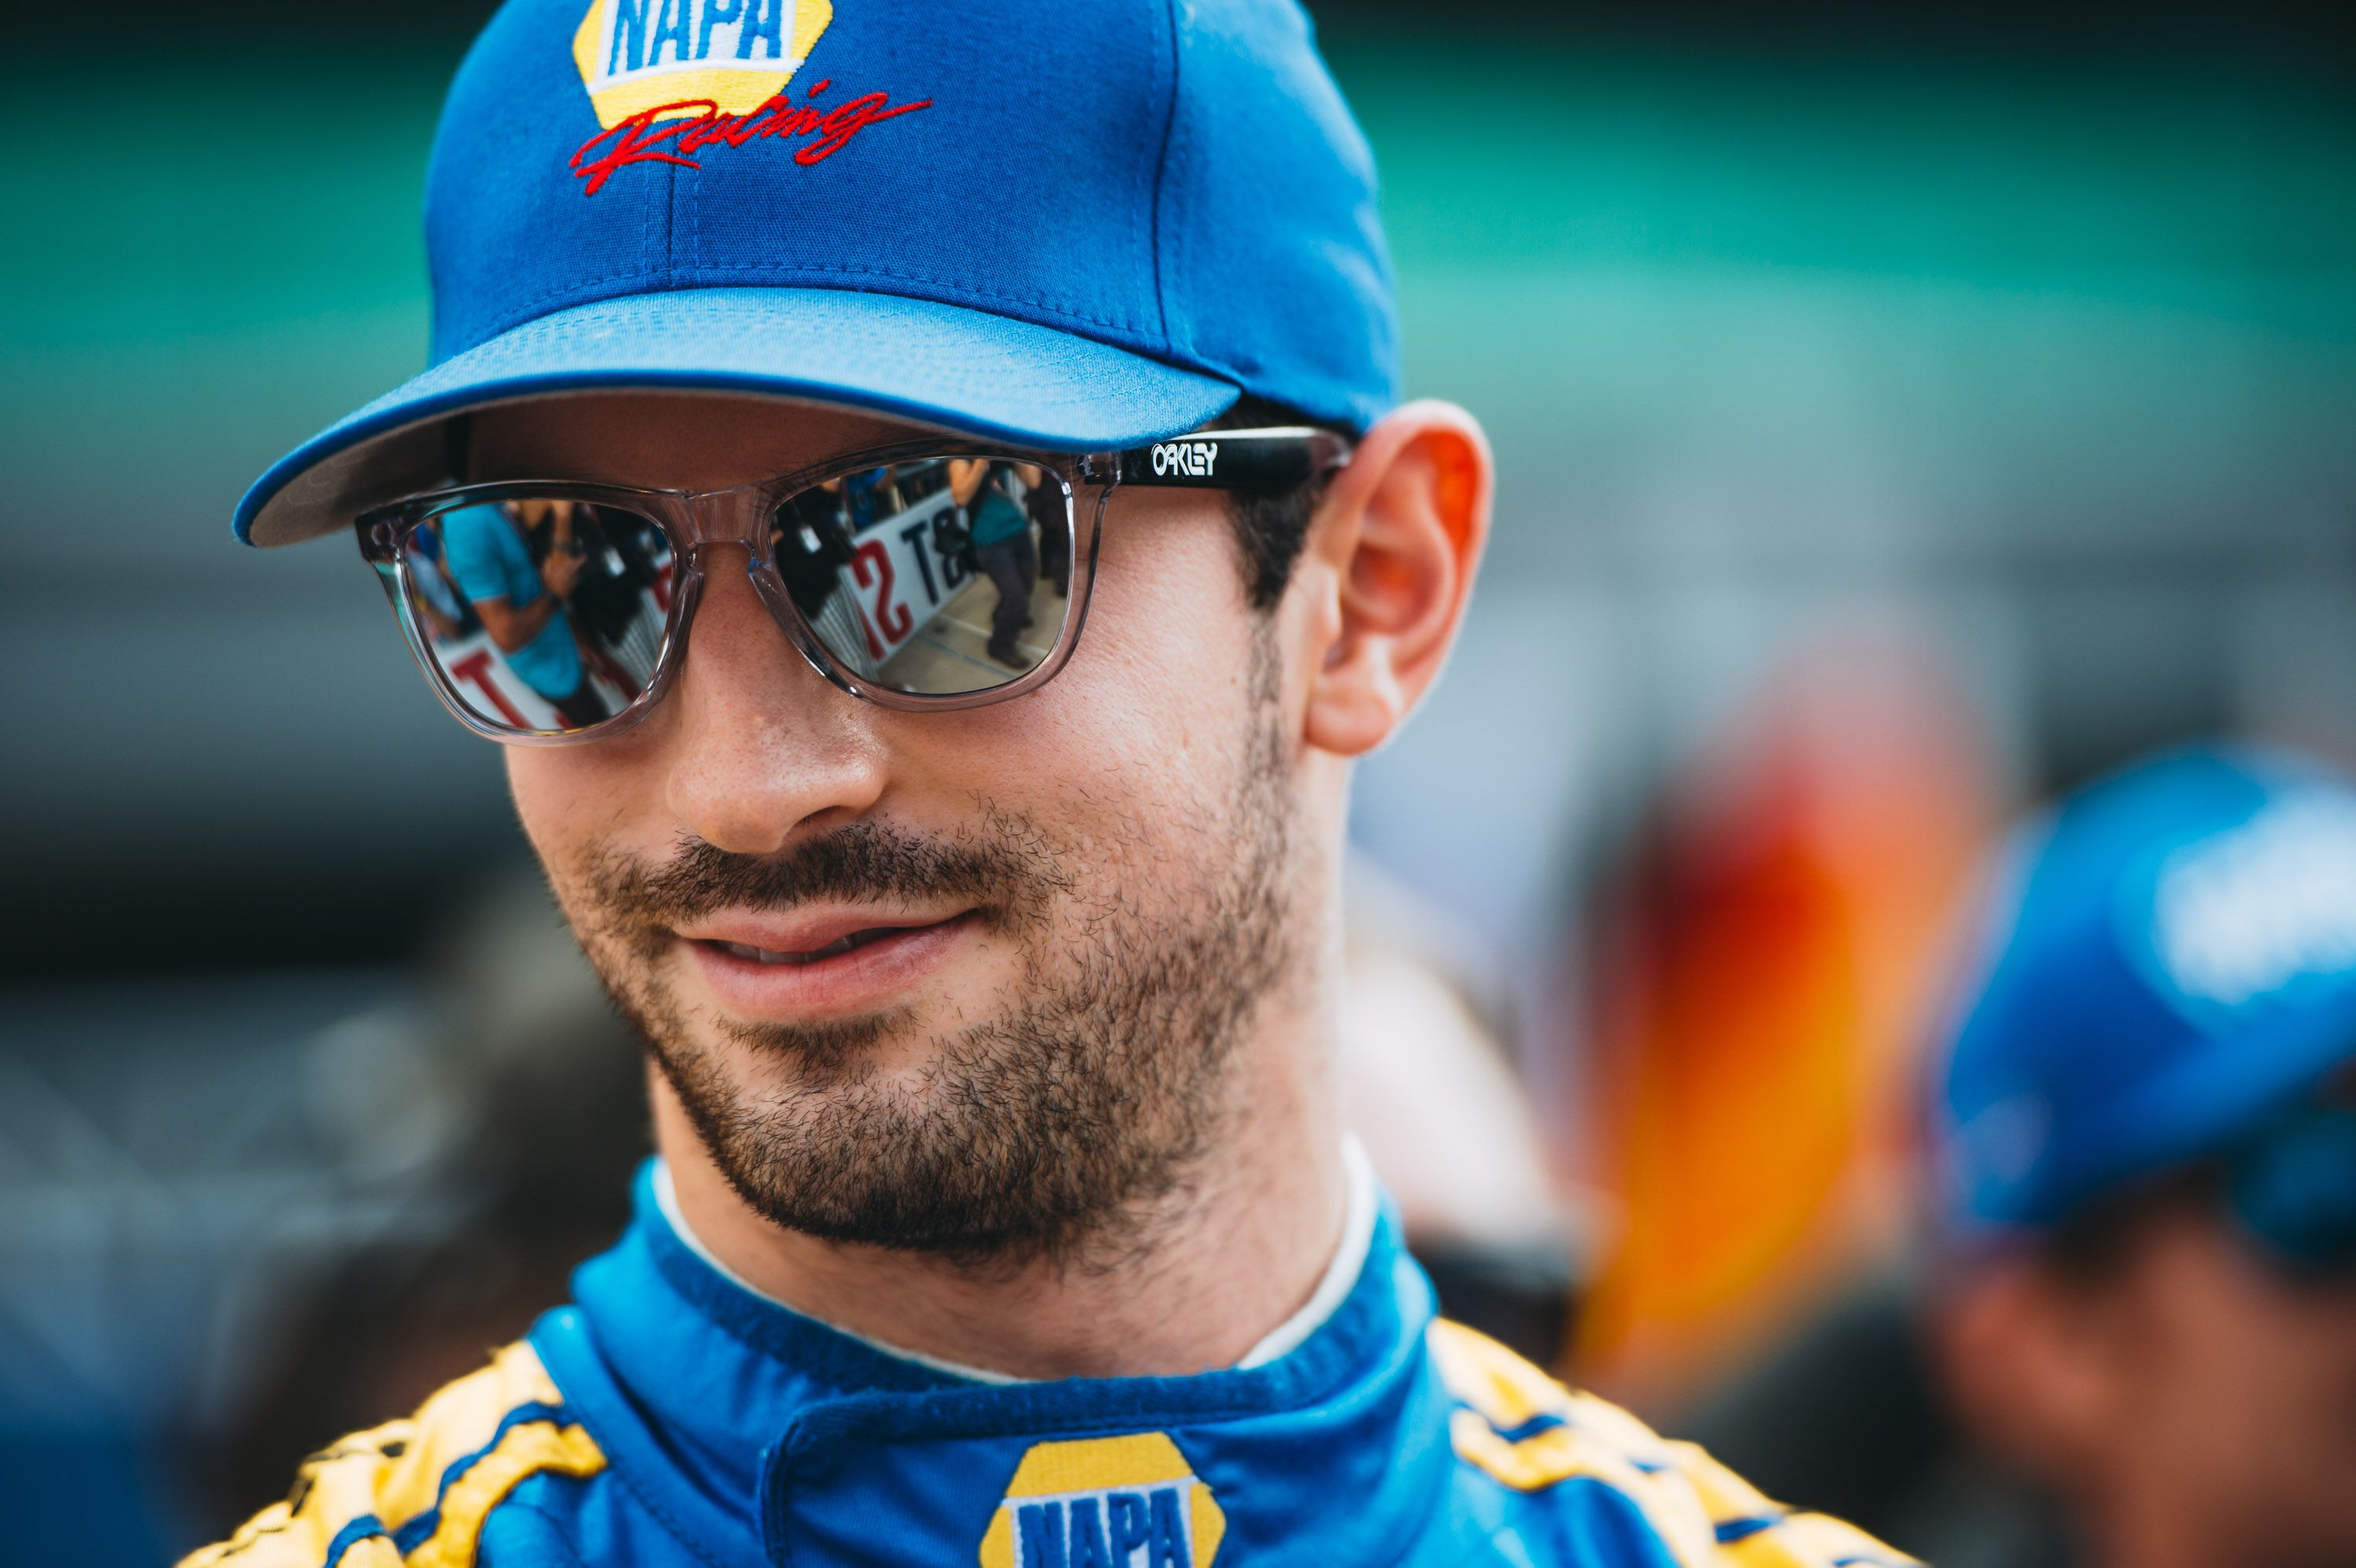 Indy 500 Winner Alexander Rossi Reveals the Biggest Mistake Novice Drivers Make at the Track